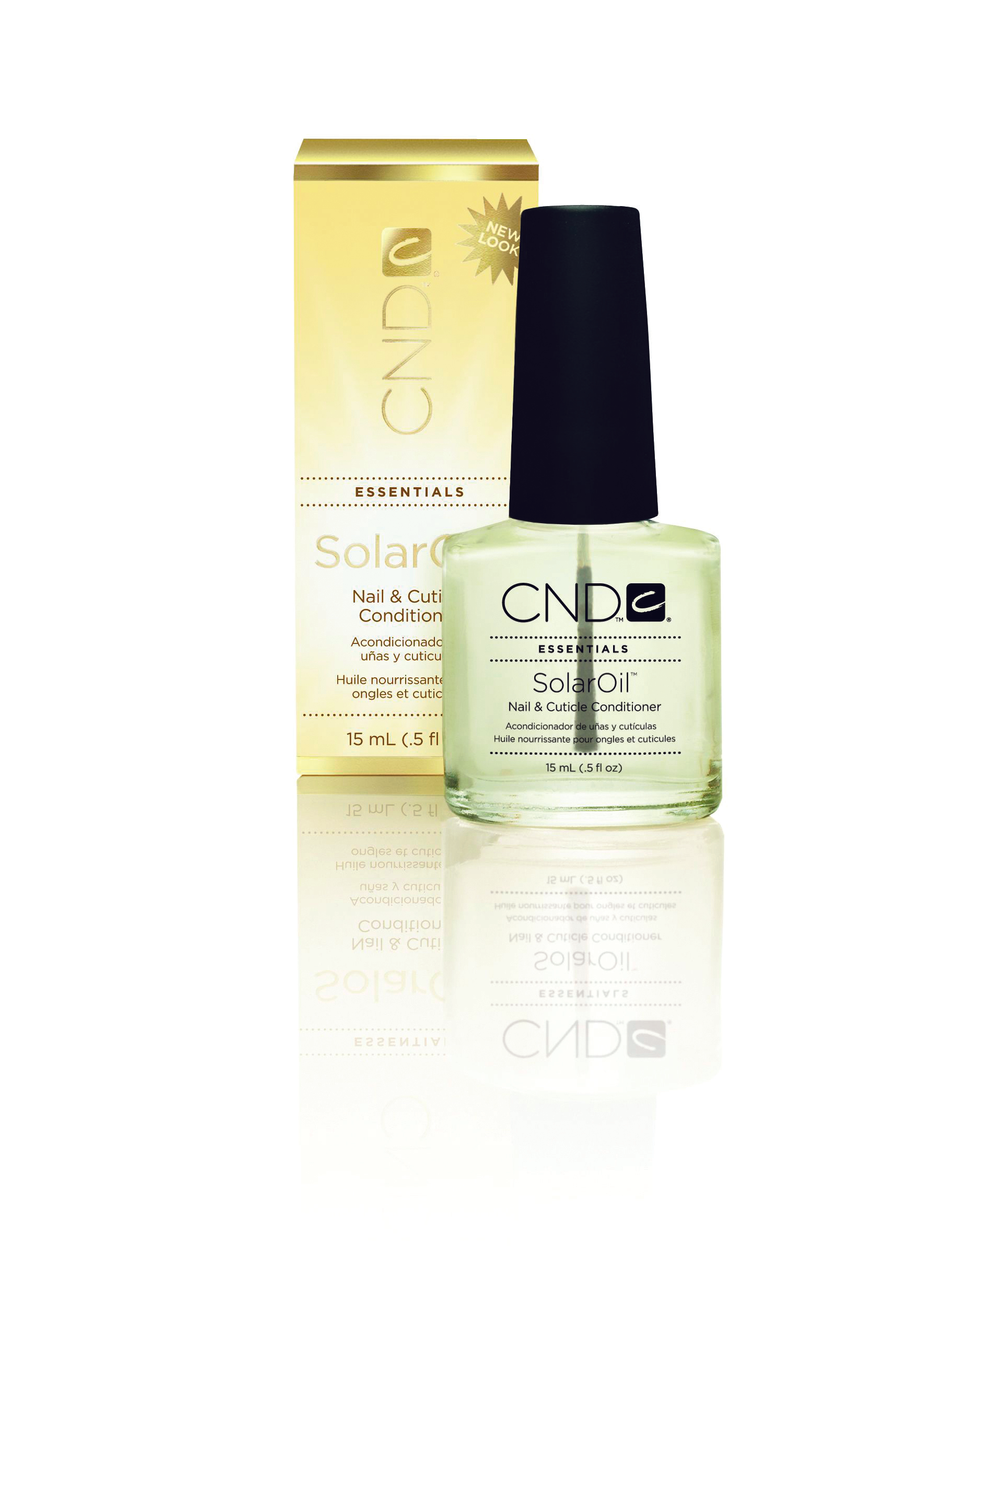 <p>FAVORITE CUTICLE TREATMENT<br />1. CND: SolarOil<br />2. Young Nails: Rose Cuticle Oil<br />3. OPI Products: Avoplex Cuticle Oil To Go<br />4. Famous Names: Dad&rsquo;i Oil<br />5. Hand &amp; Nail Harmony: Gelish Nourish</p>